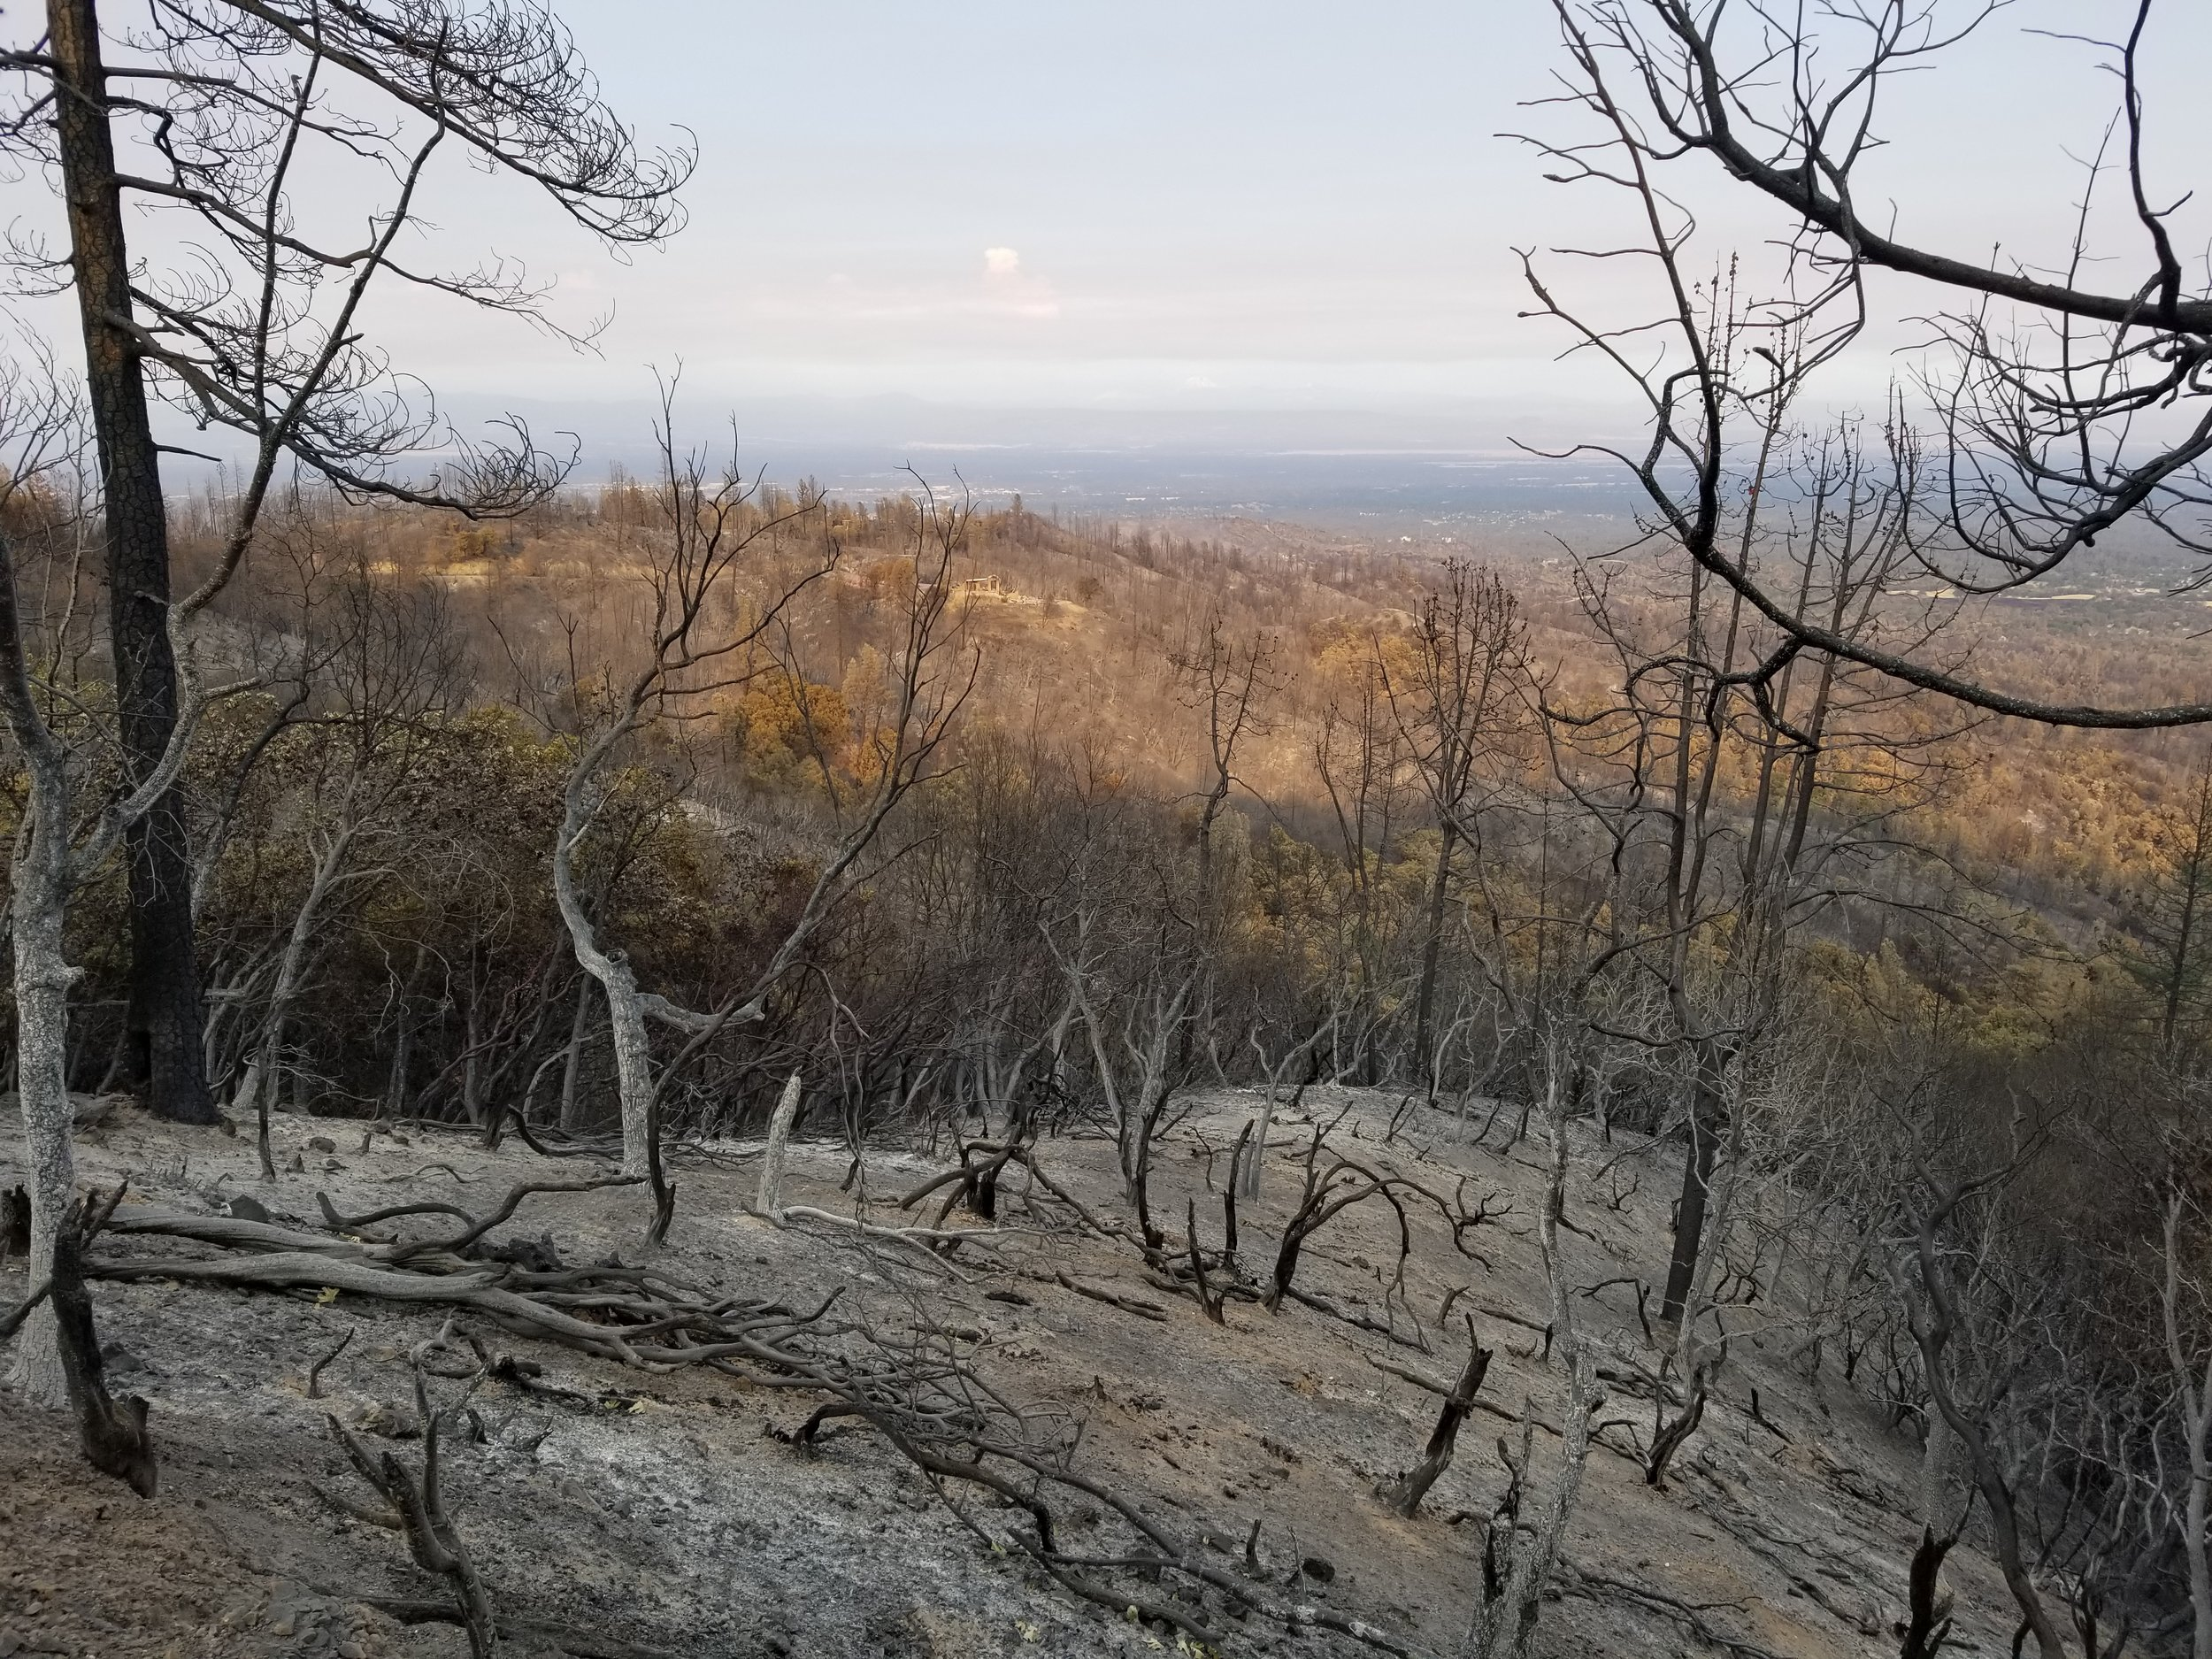 Looking to the east from the ridge. The fire burned the hottest up this side. This will be an ideal vineyard site. Towards the top center you can see the remains of our neighbors house.